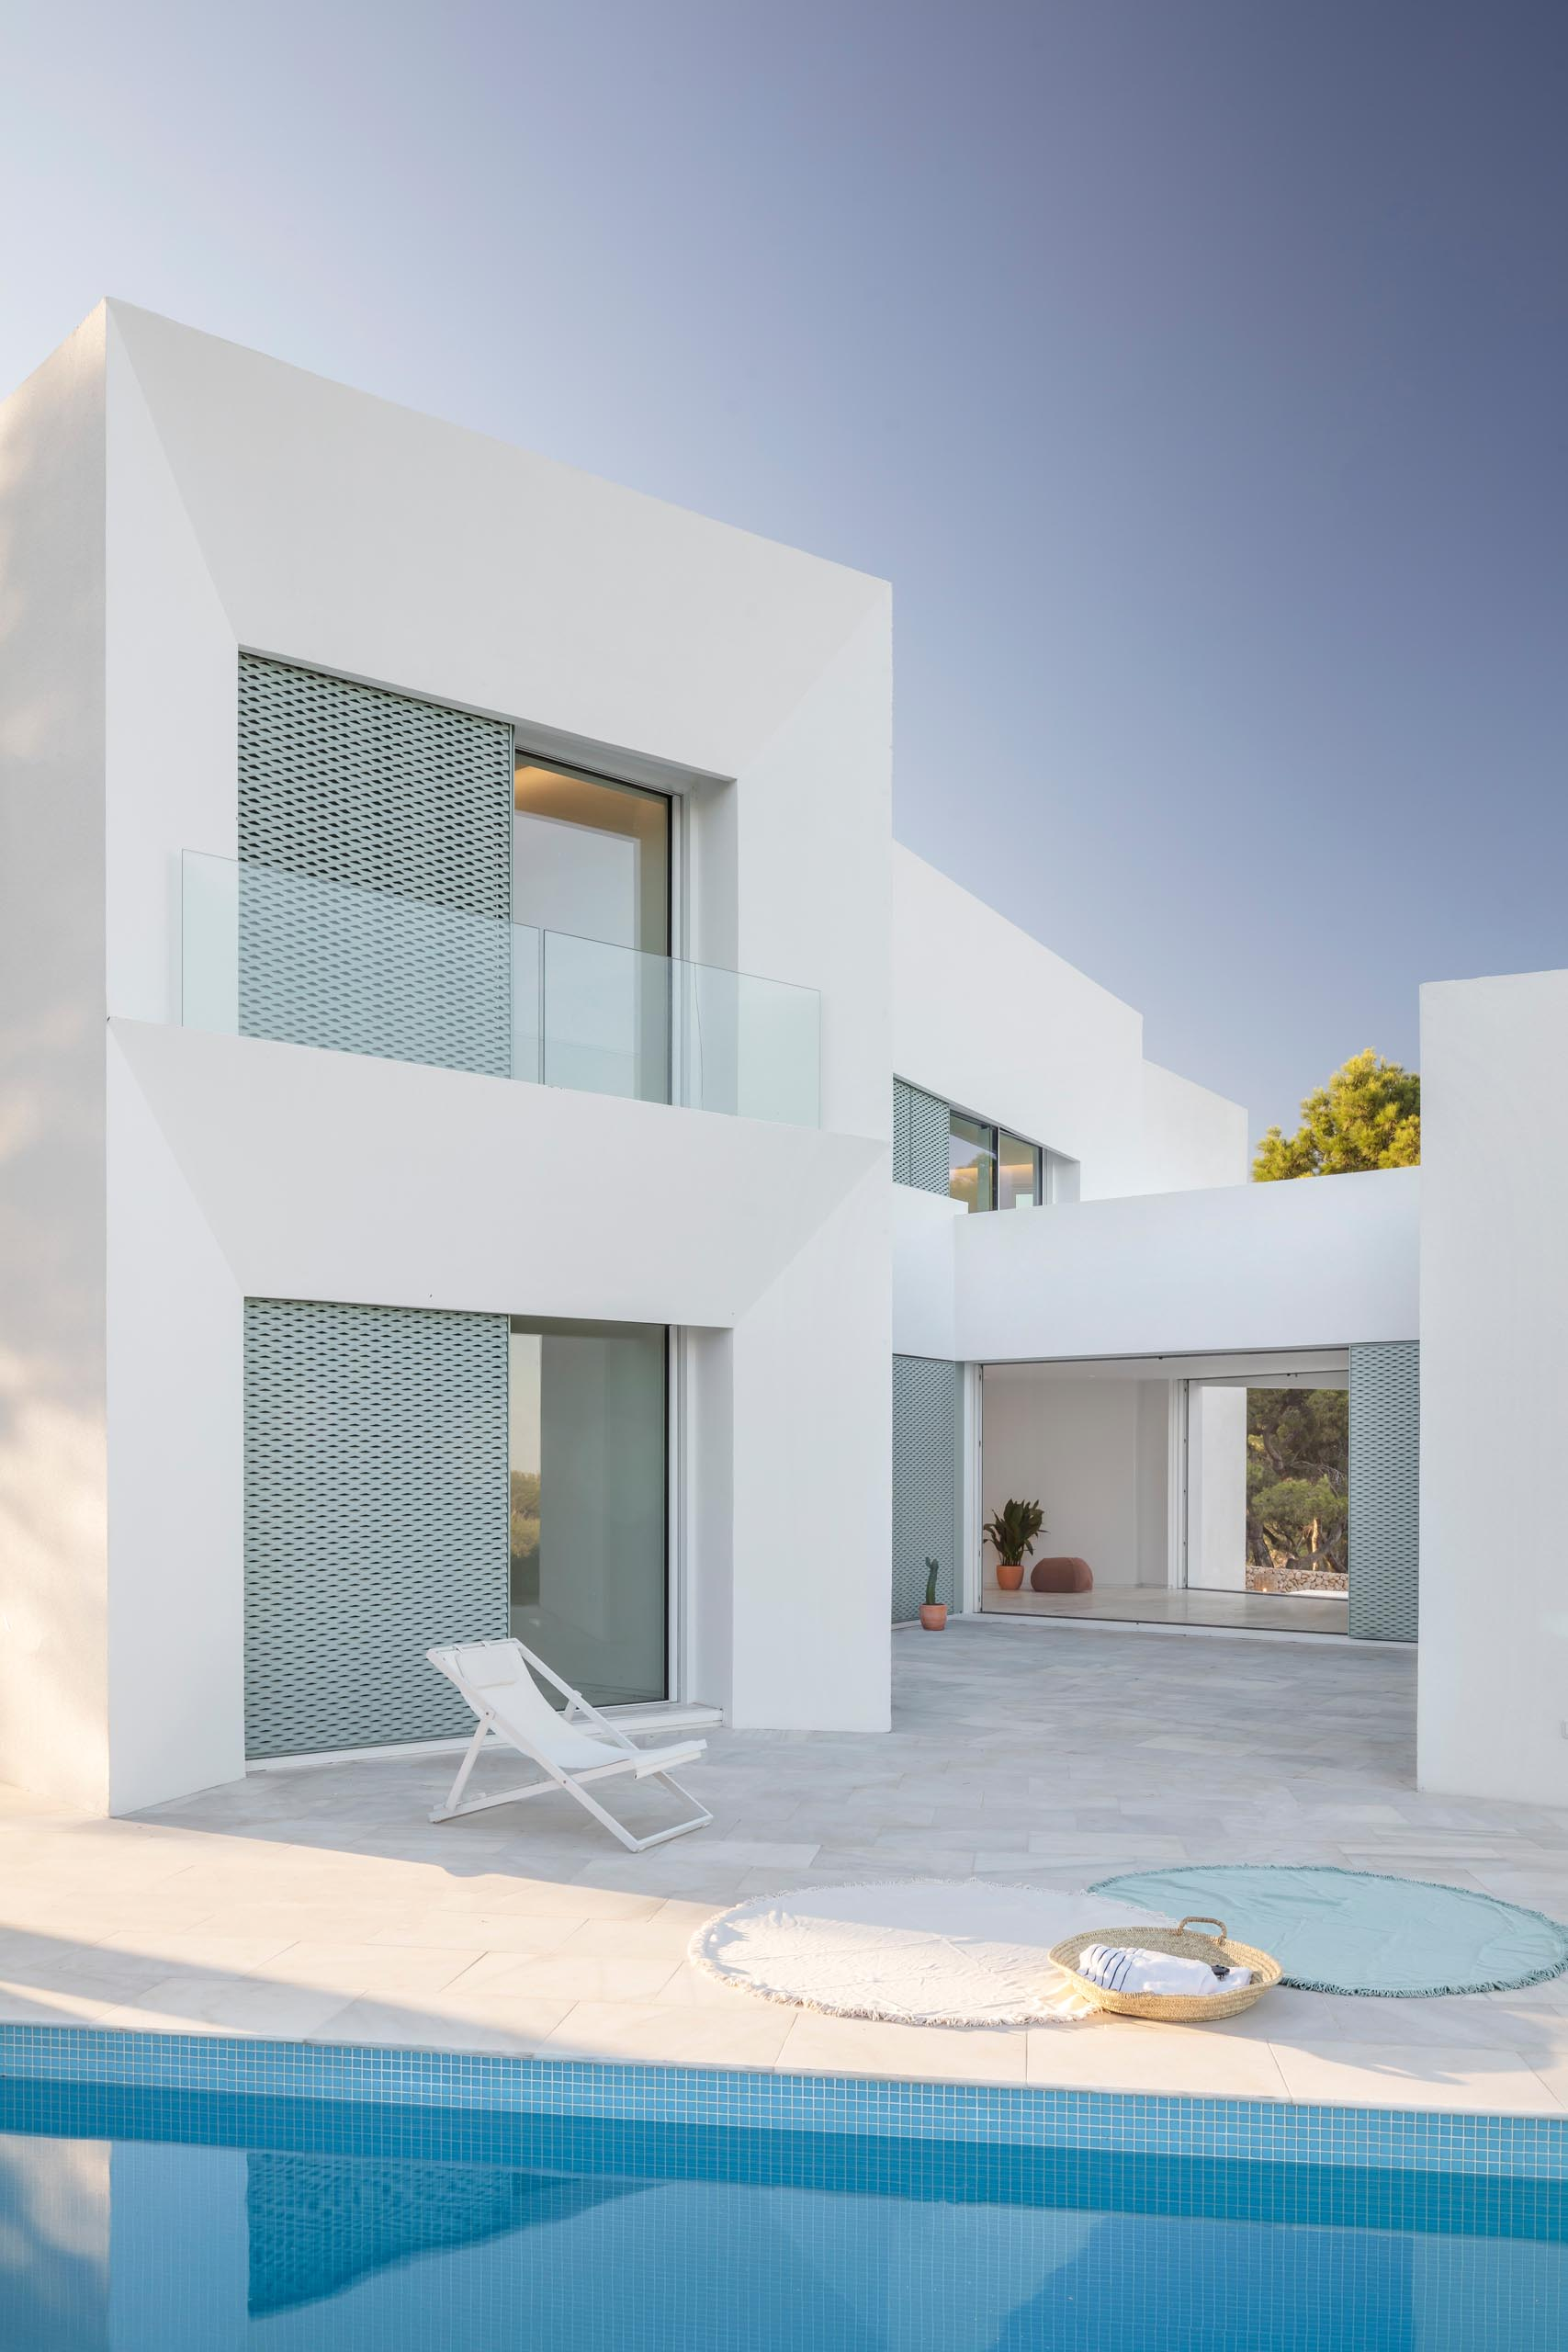 A modern white home with pastel turquoise perforated aluminum screens, a patio, and swimming pool.